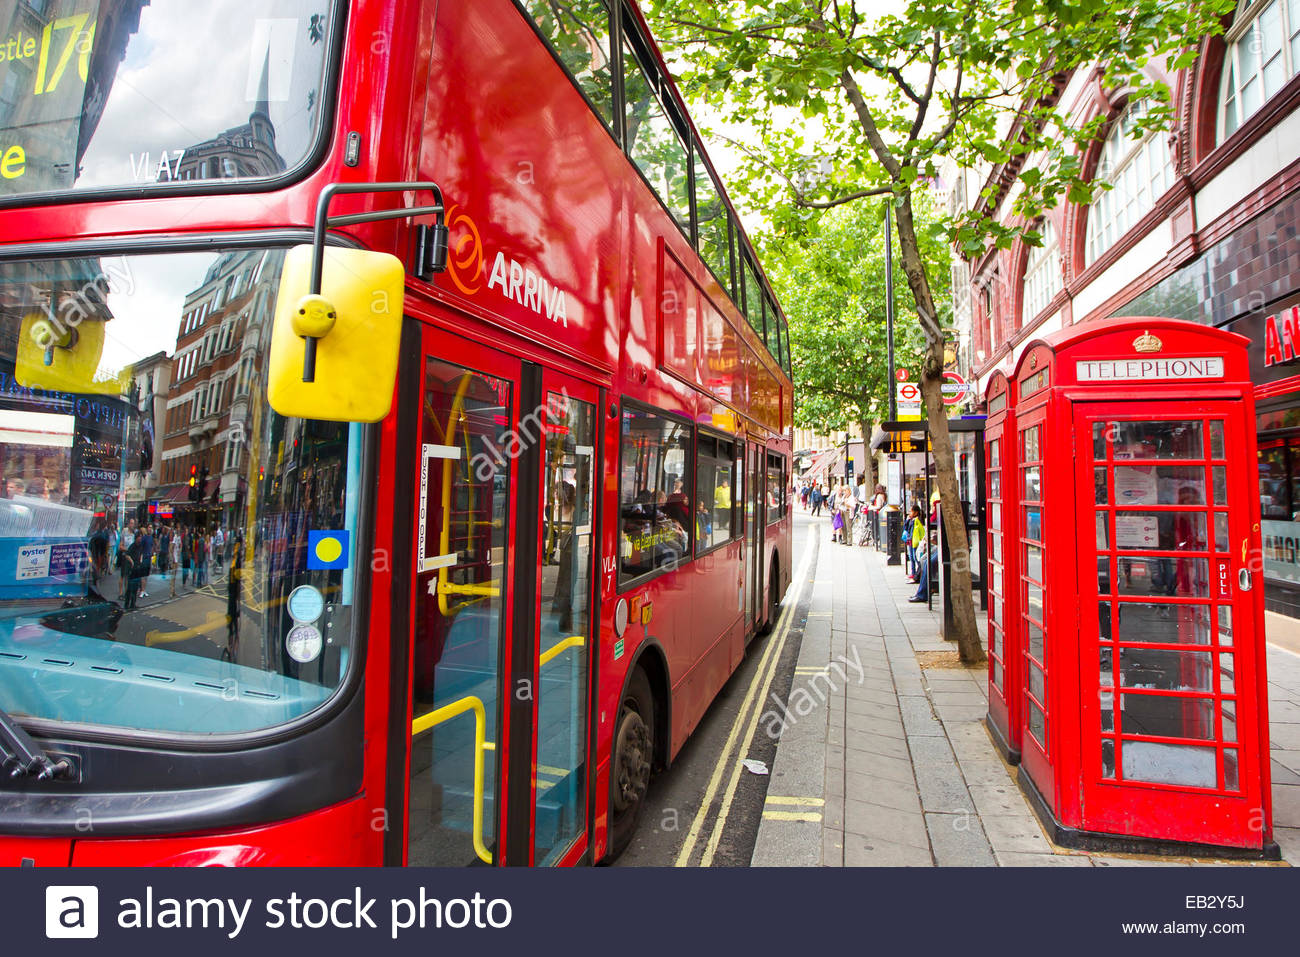 A bright red double decker bus parked next to a pair of iconic red phone booths. - Stock Image